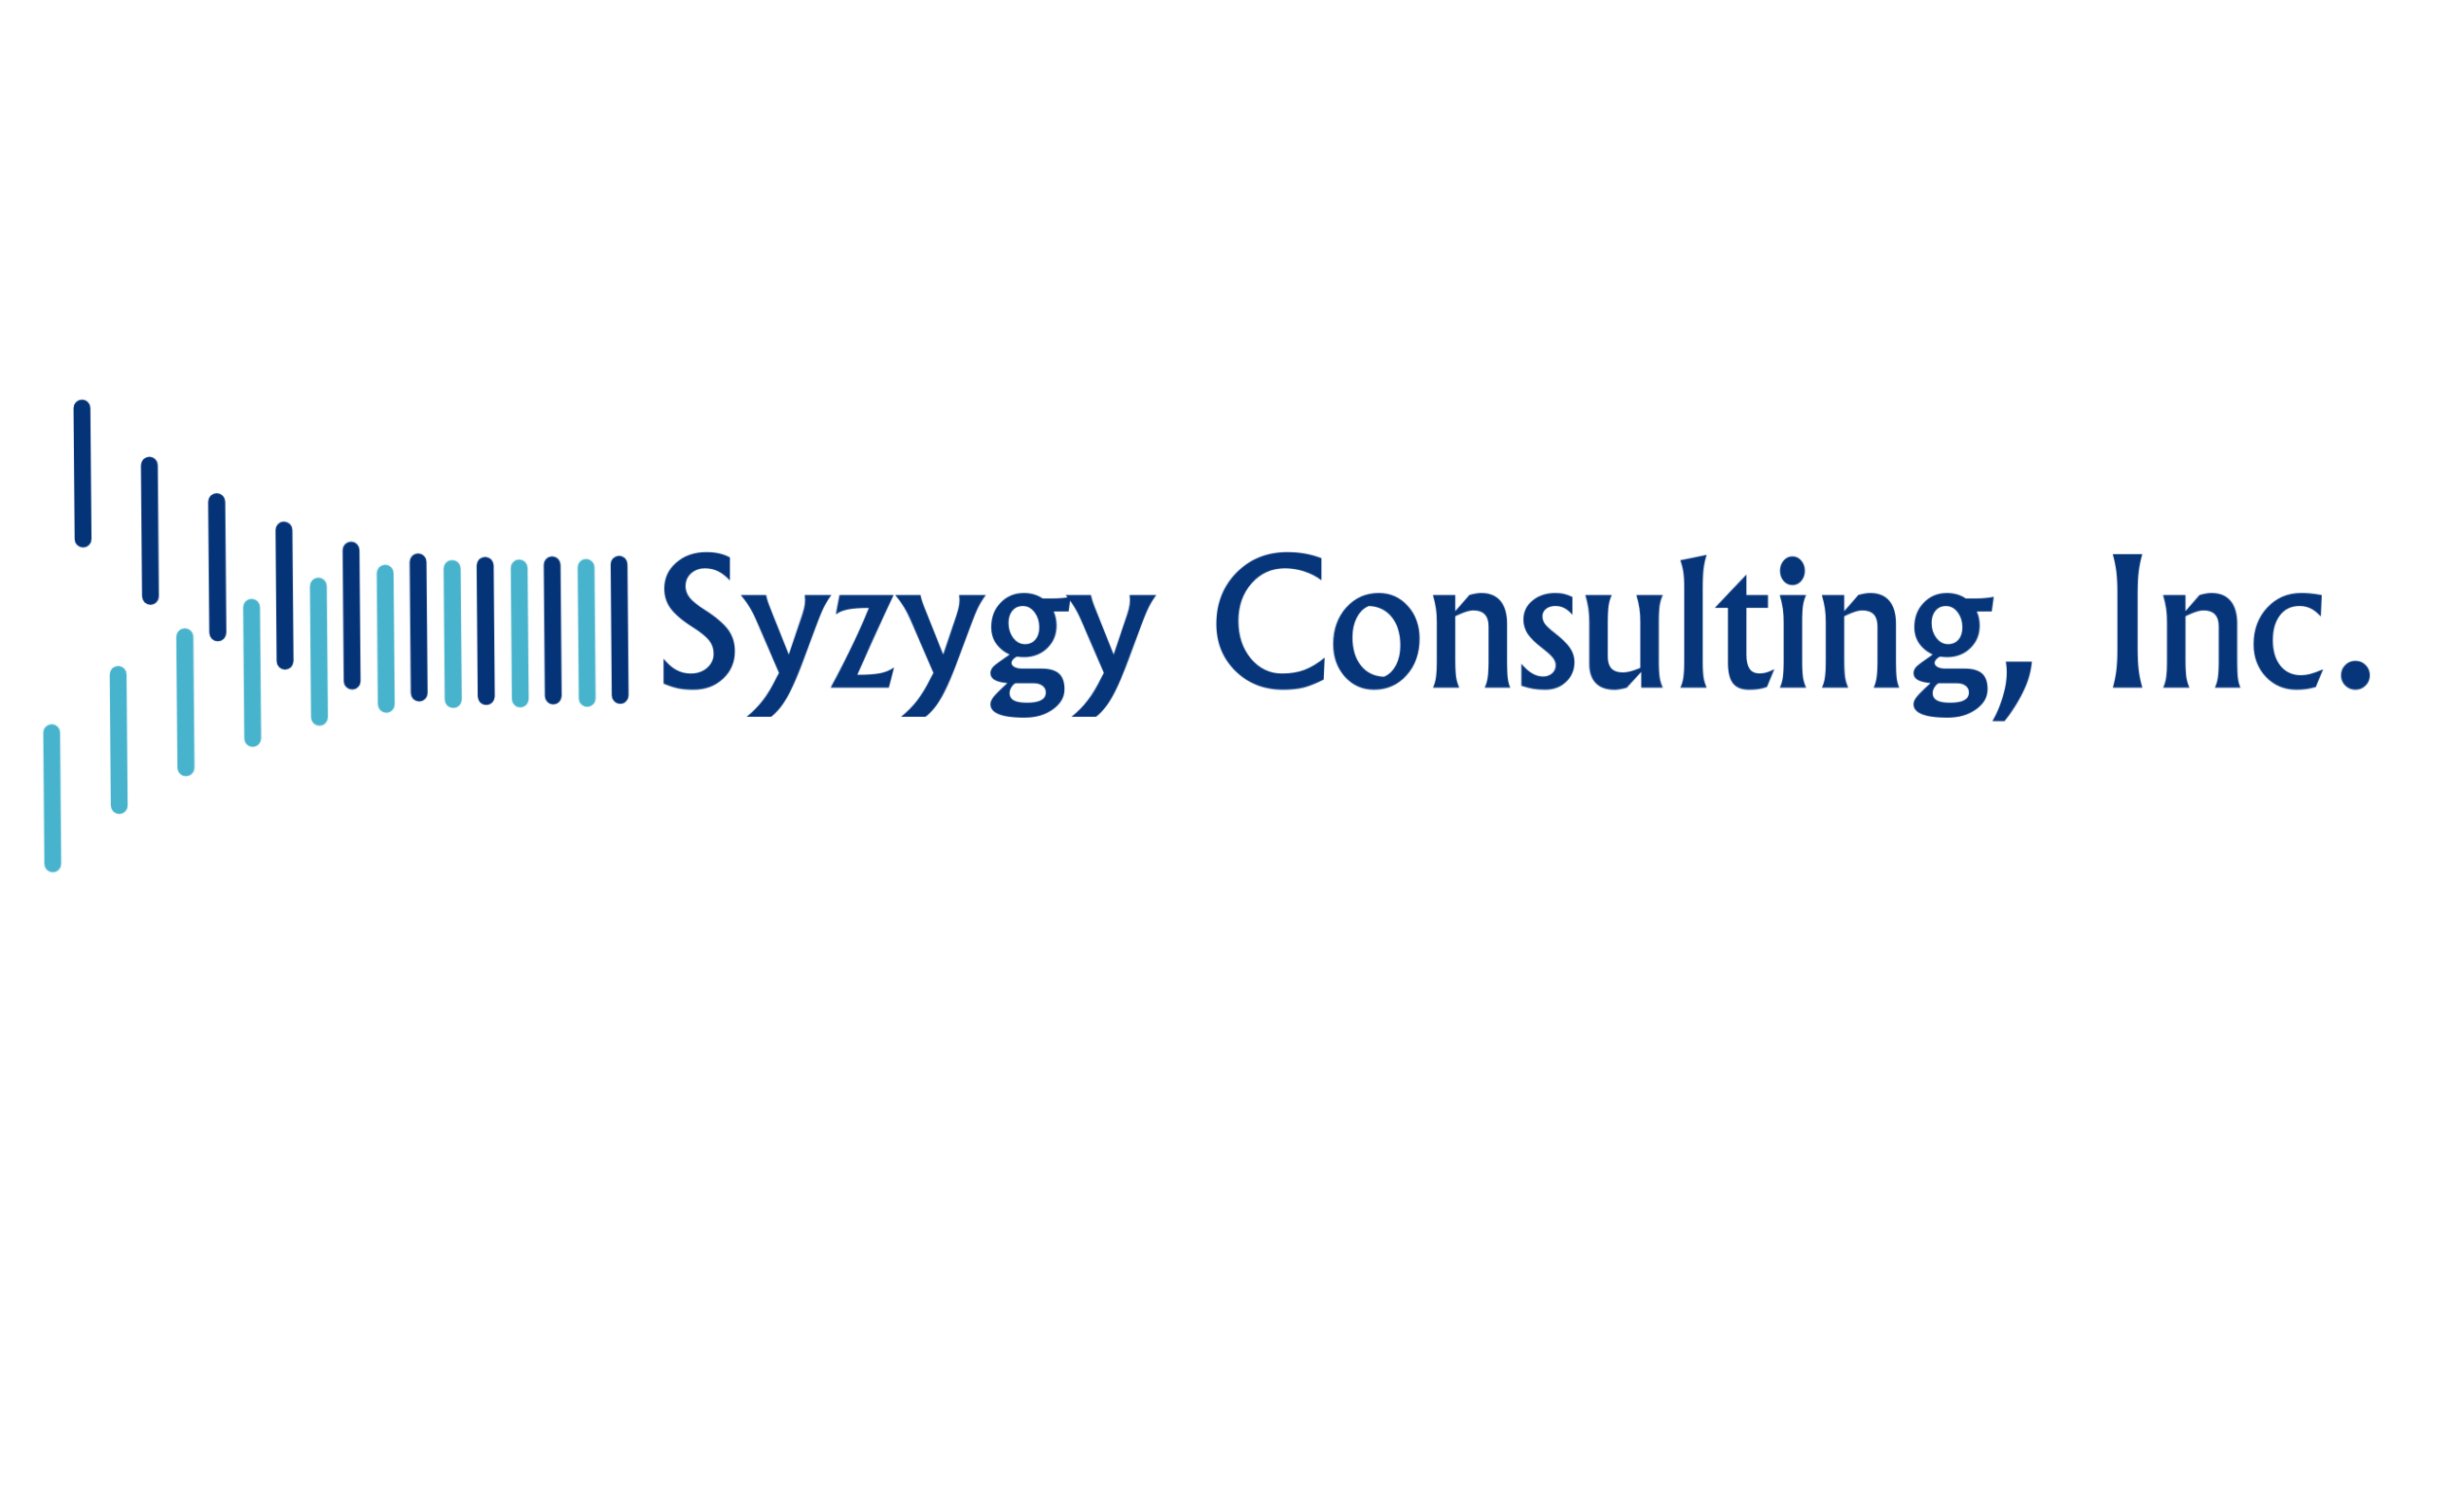 Syzygy Consulting Inc.